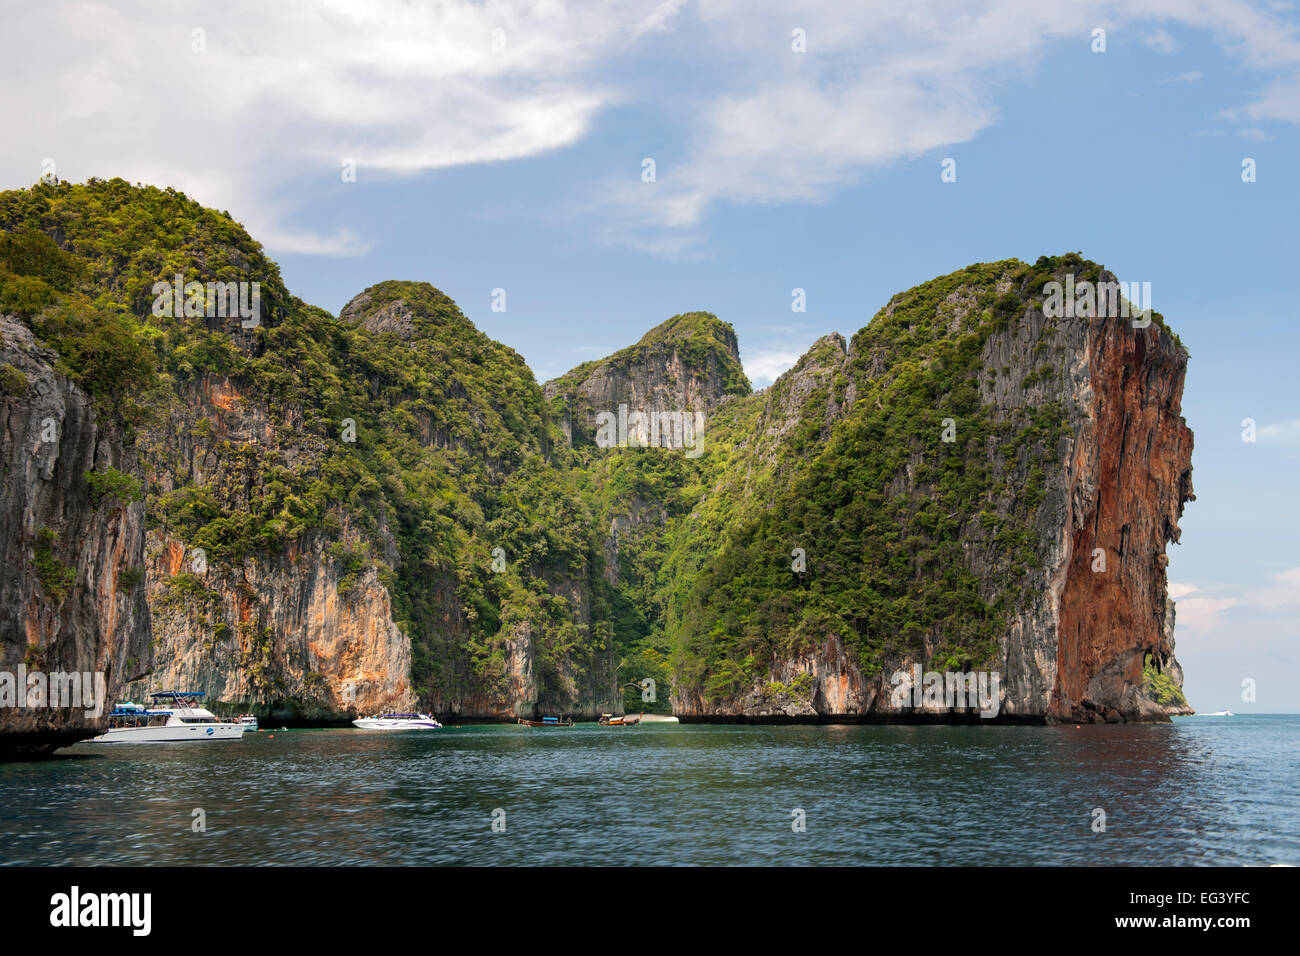 The coast of Koh Phi Phi Ley island in Thailand. - Stock Image